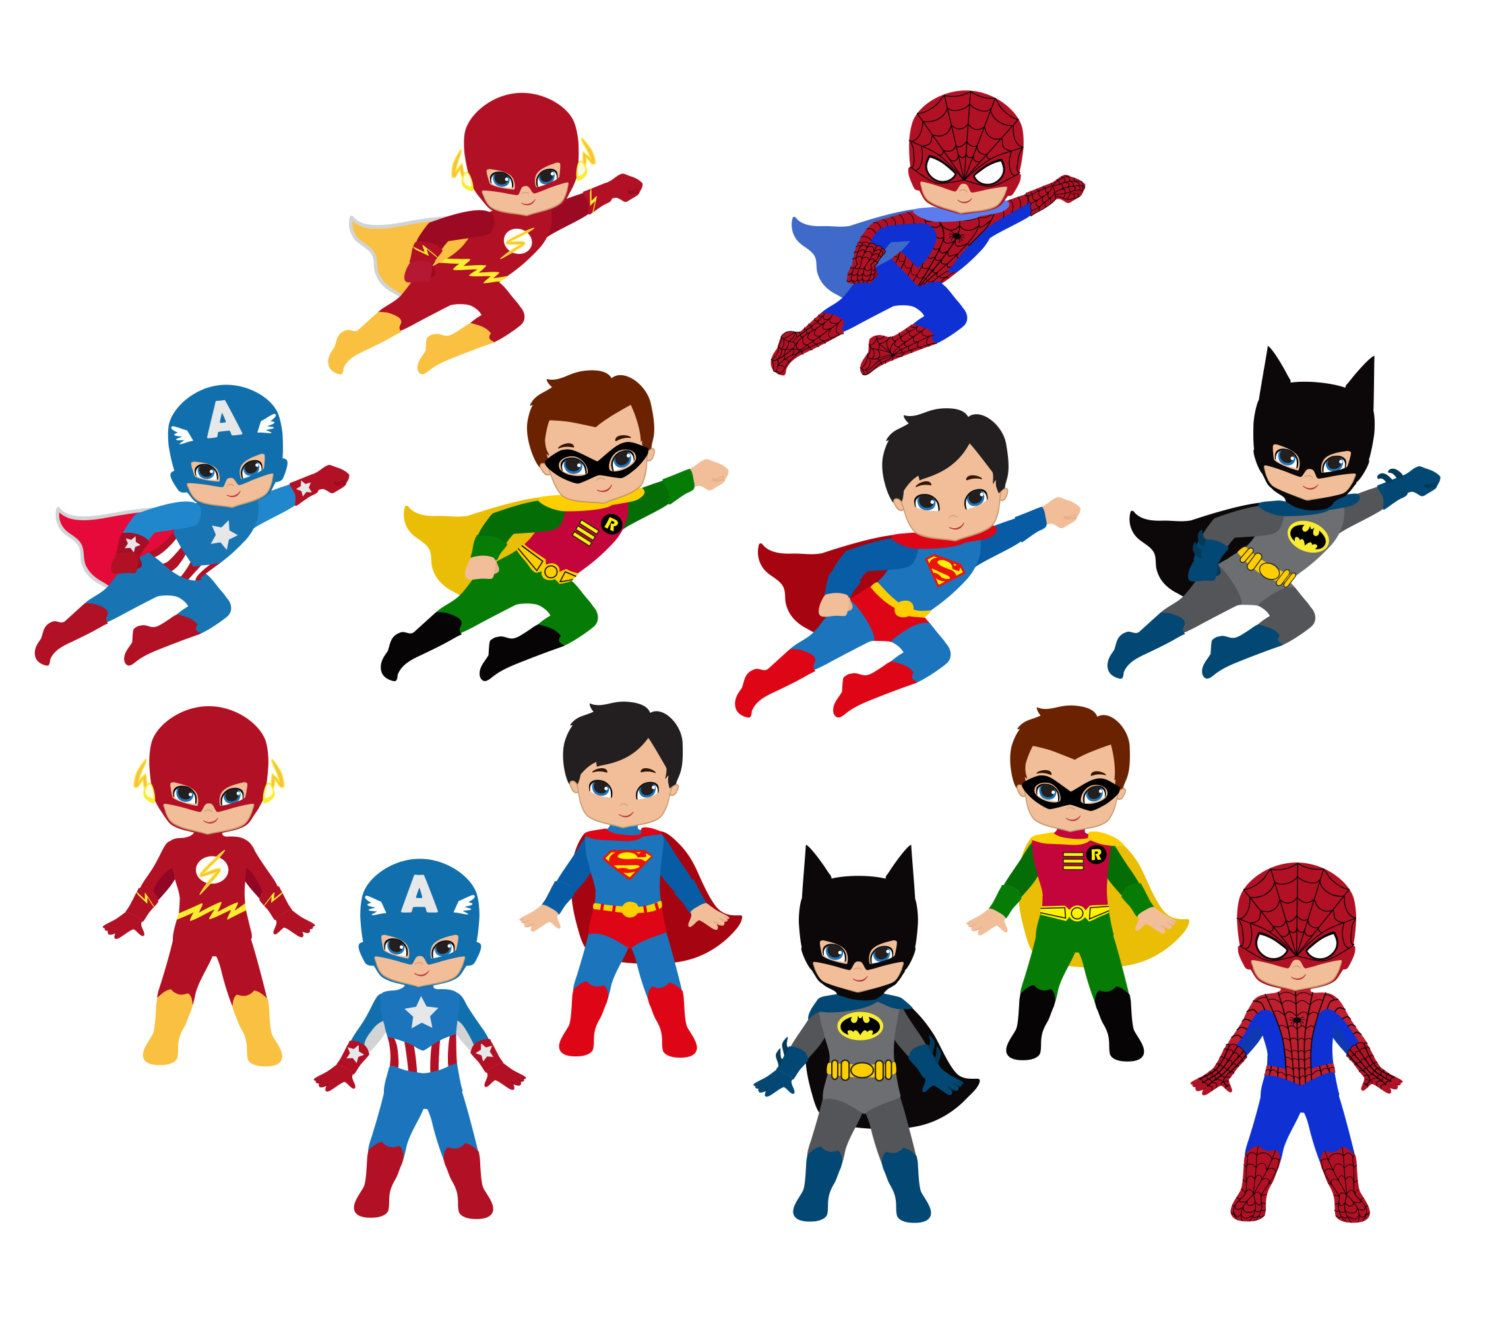 free superhero clipart fonts clipart freebies pinterest rh pinterest com flying superhero kid clipart Cute Superhero Clip Art